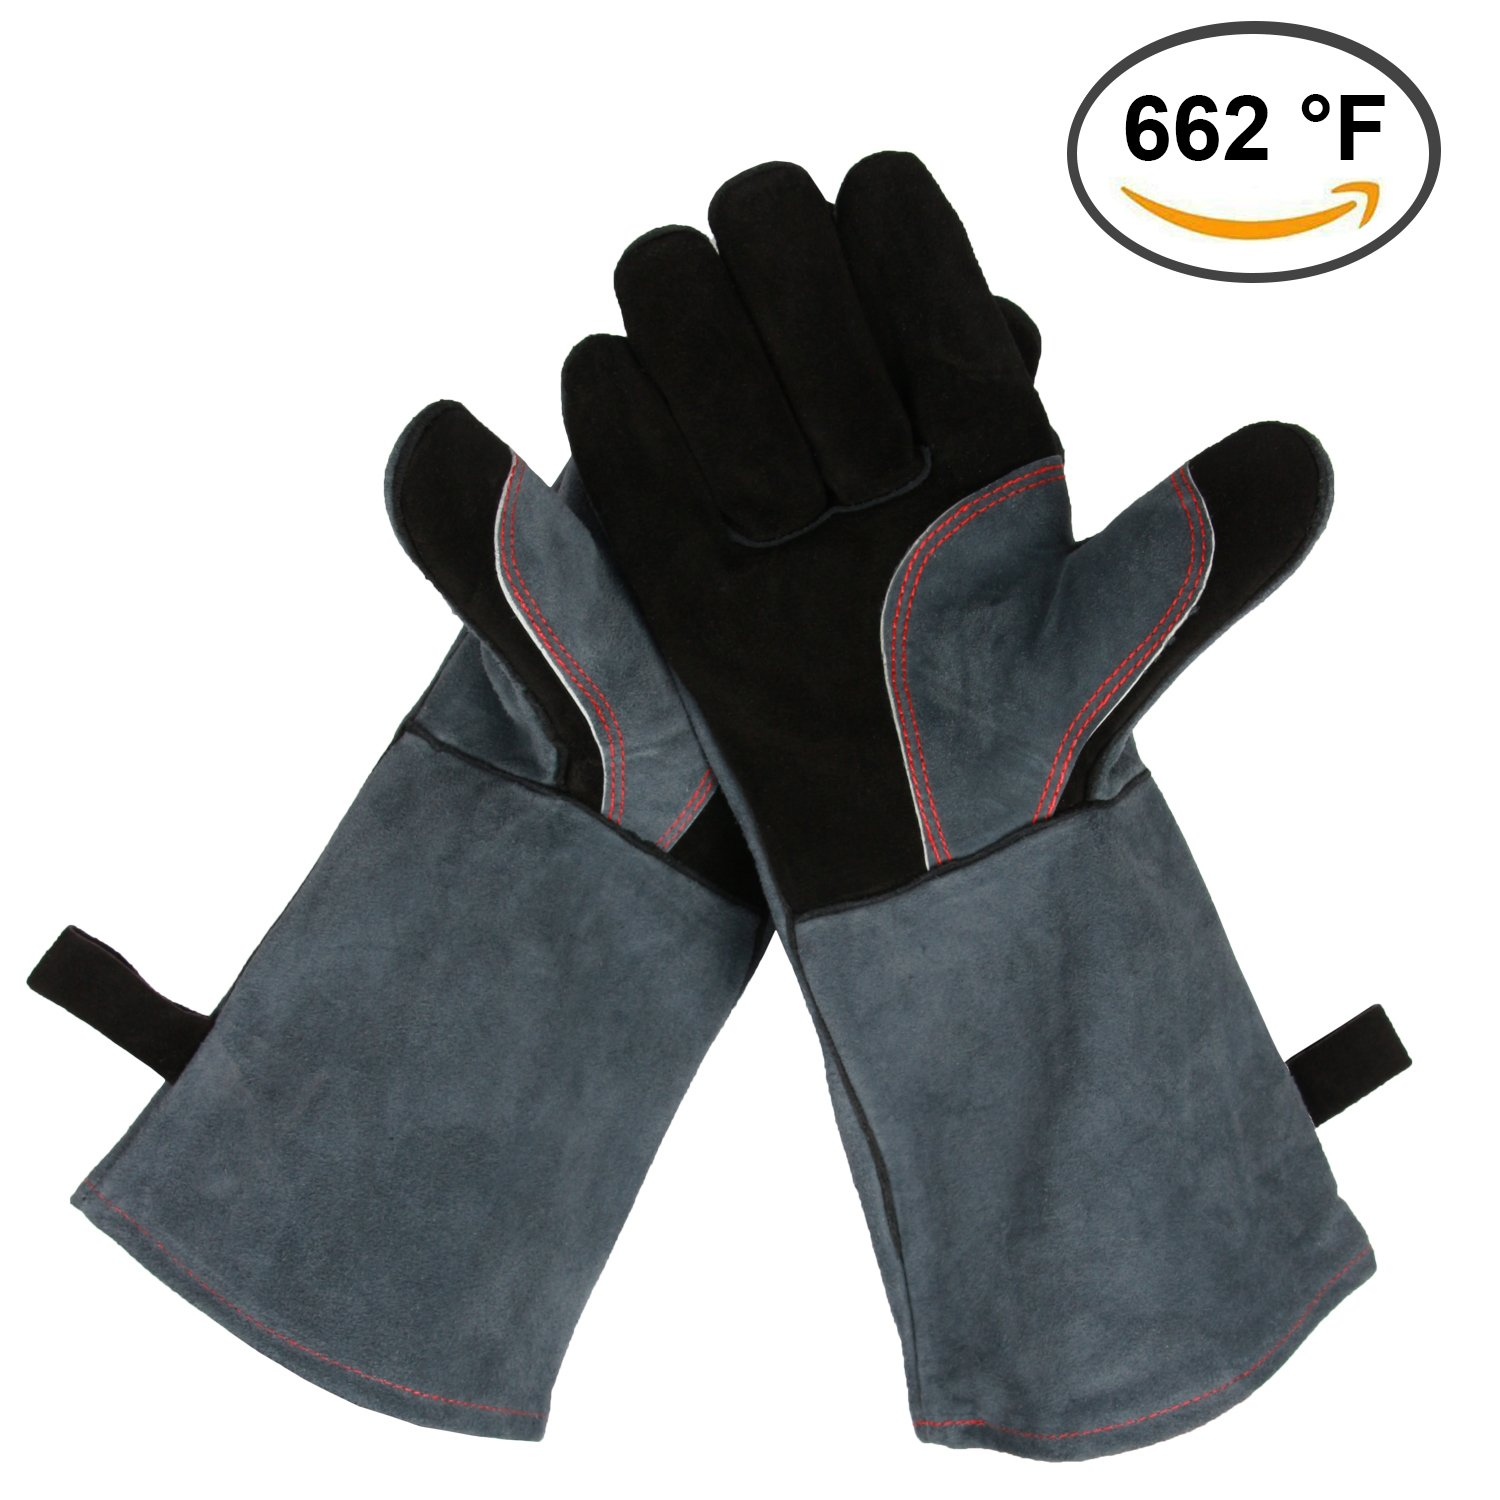 Ozero BBQ Leather Gloves Review